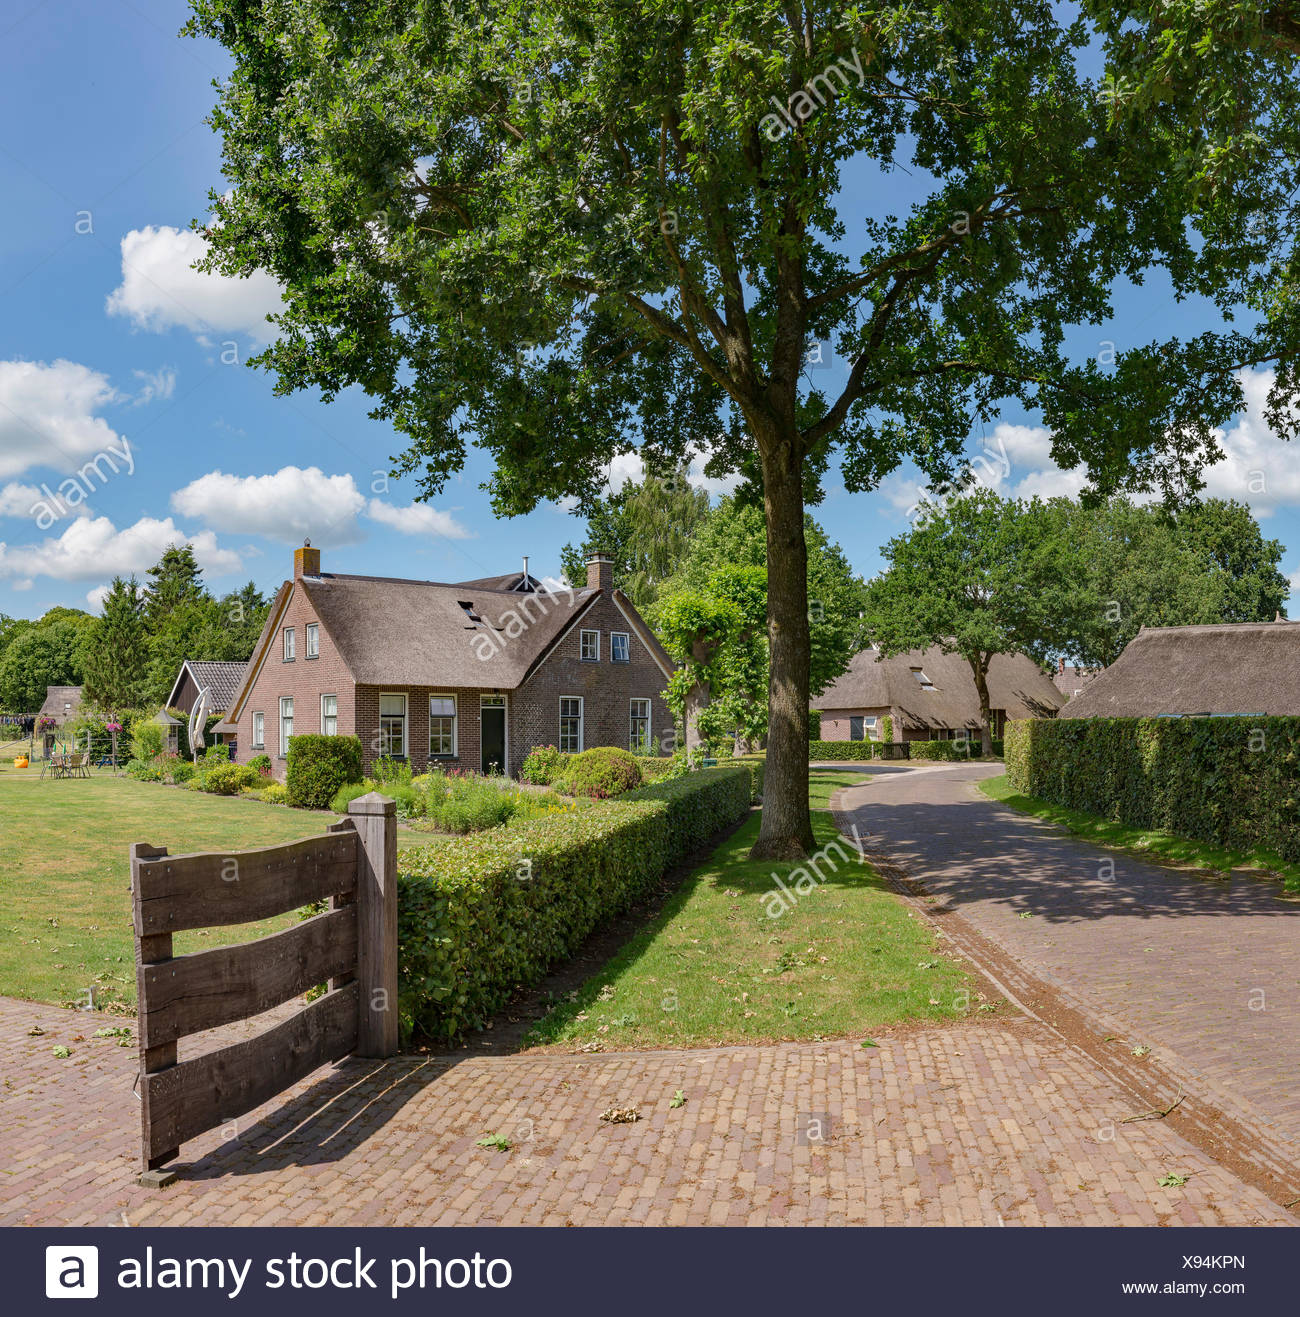 Norg,Drenthe,Farmhouses with a thatched roof - Stock Image